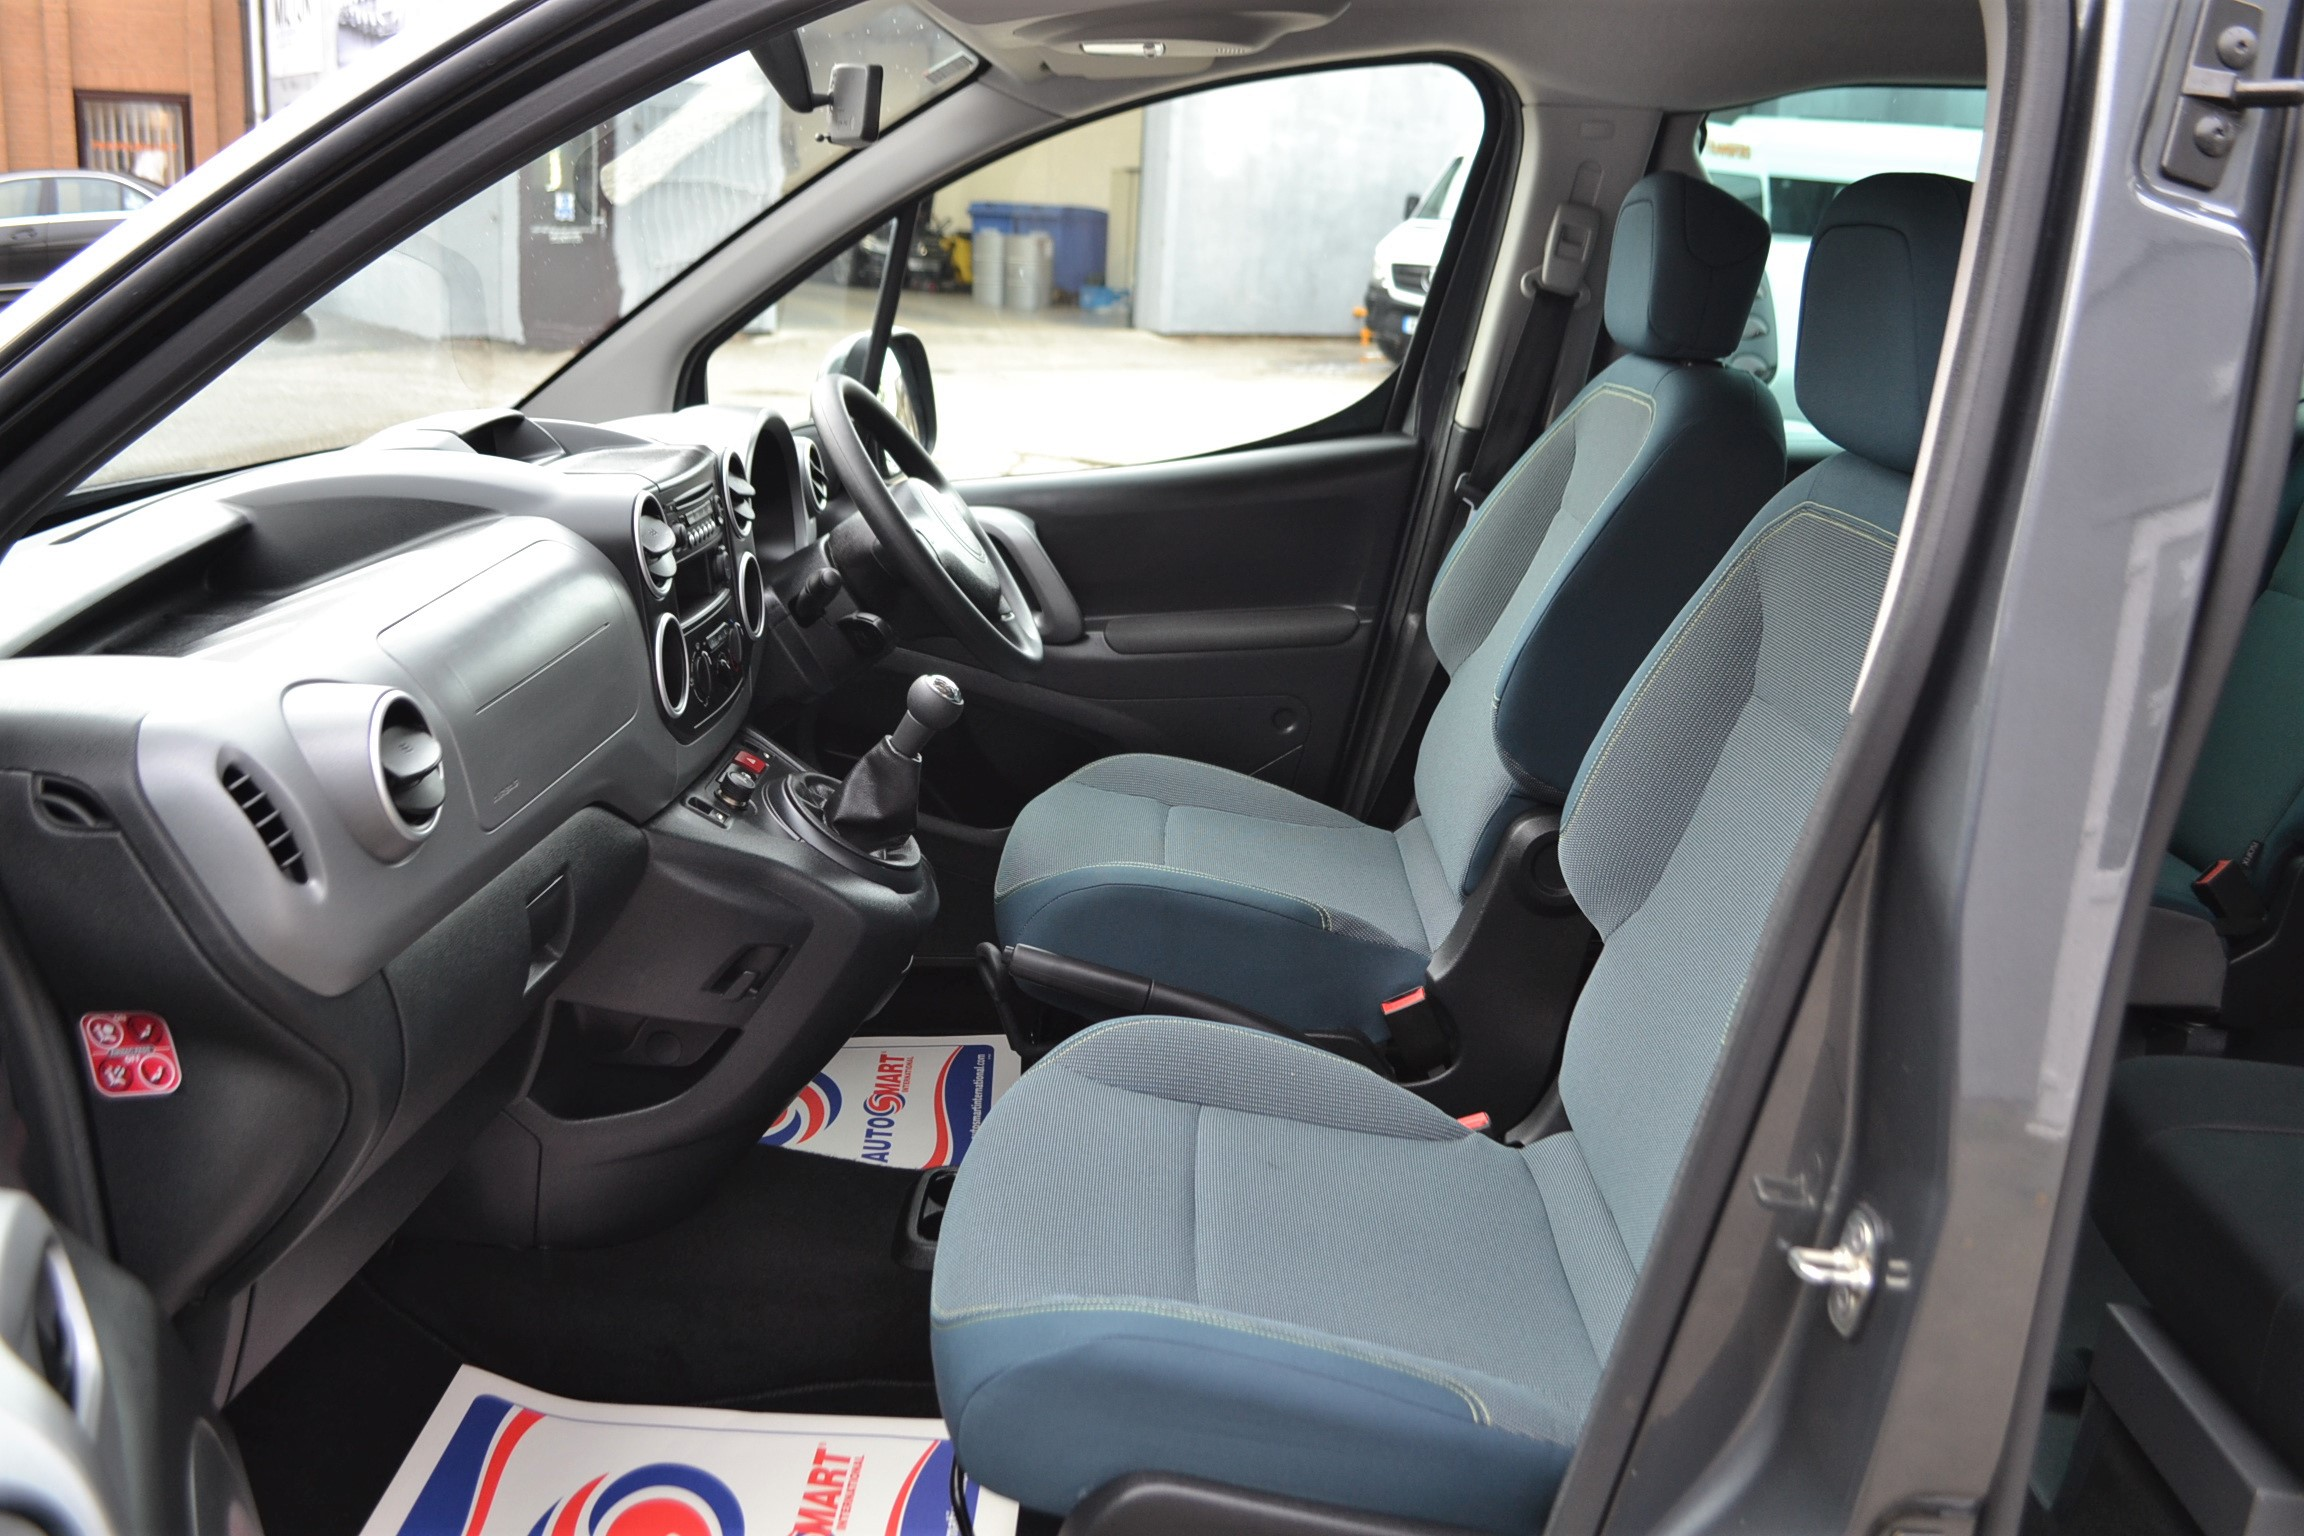 Disabled Cars For Sale Bristol Wheelchair Accessible Vehicles Used For Sale Somerset Devon Dorset Bath Peugeot Partner WA68 EVU 21